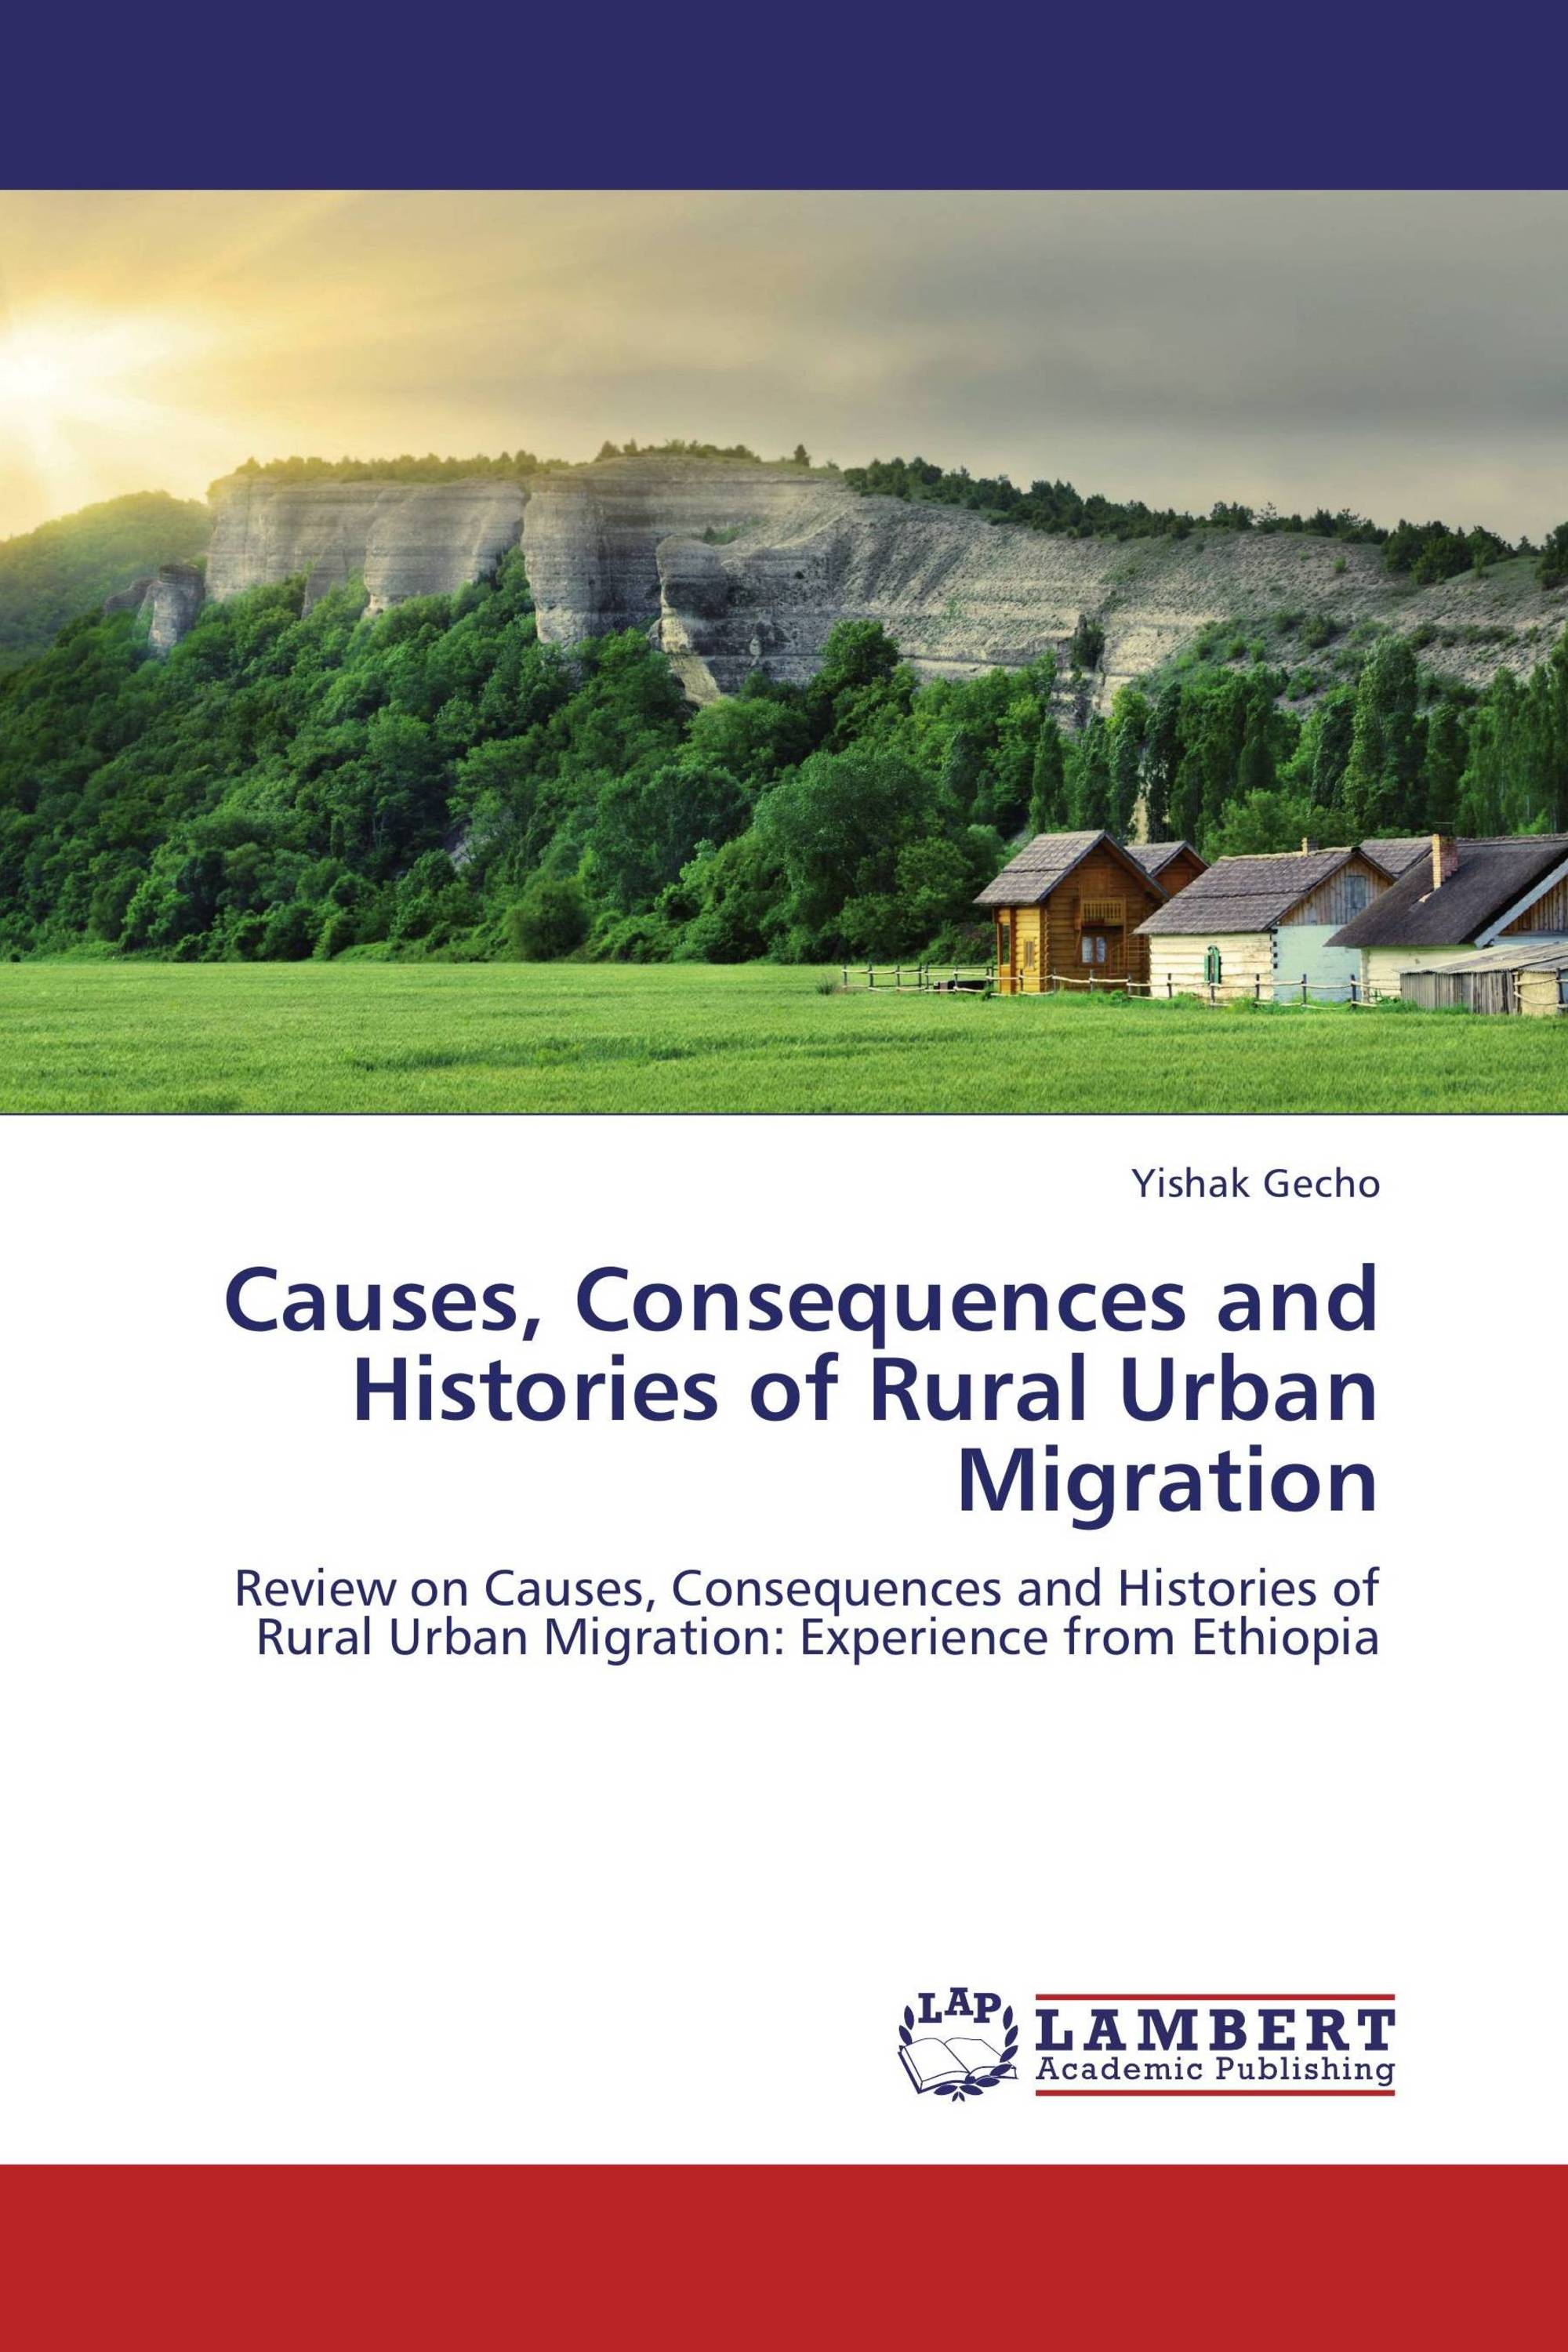 thesis on rural-urban migration Mass migration has impacts on rural development in a number of ways, including the loss of labour, changes in household age and gender structure and off-farm income.